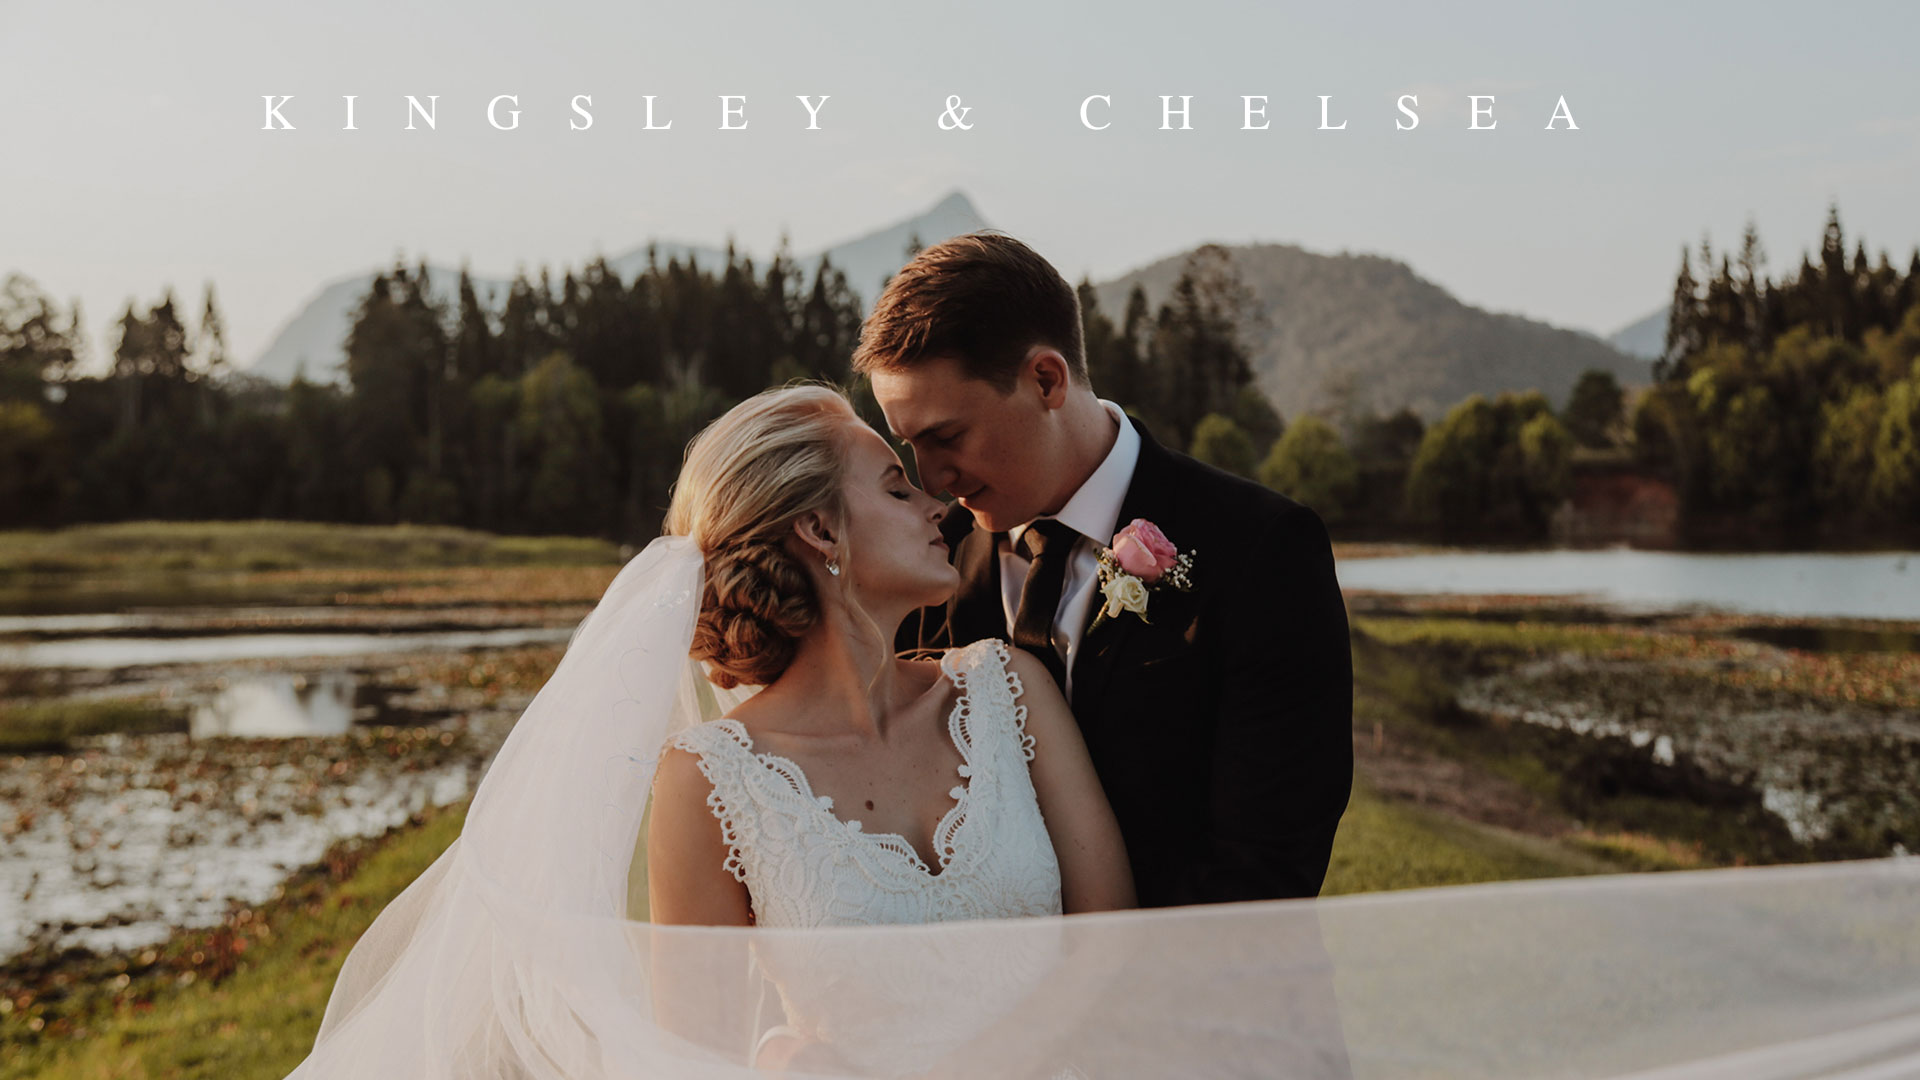 Kingsley + Chelsea | Doon Doon, Australia | 531 Commissioners Creek Road